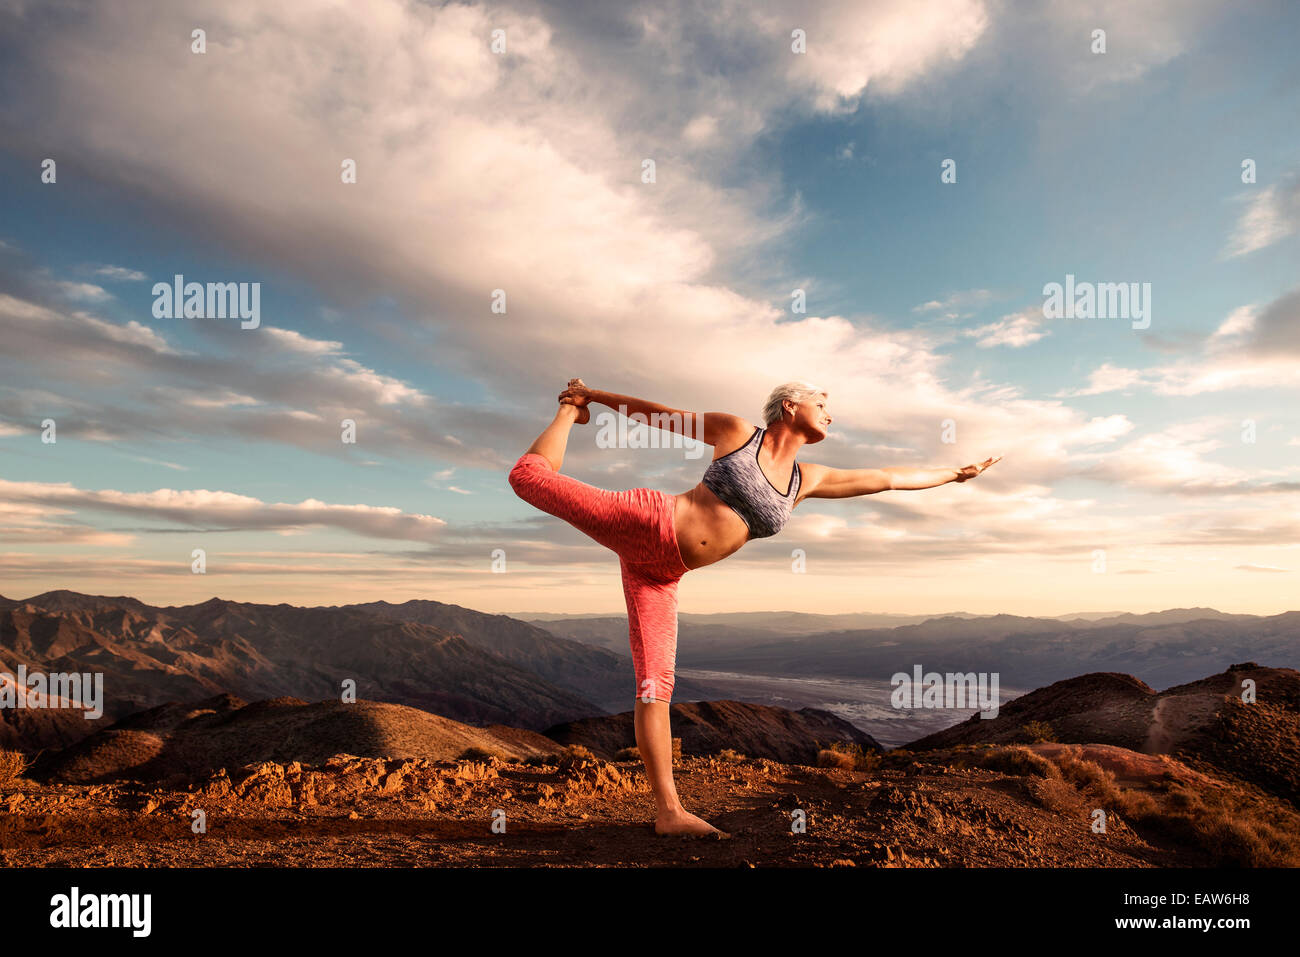 Senior woman doing yoga pose on top of mountain at sunset with landscape and desert valley below. Stock Photo